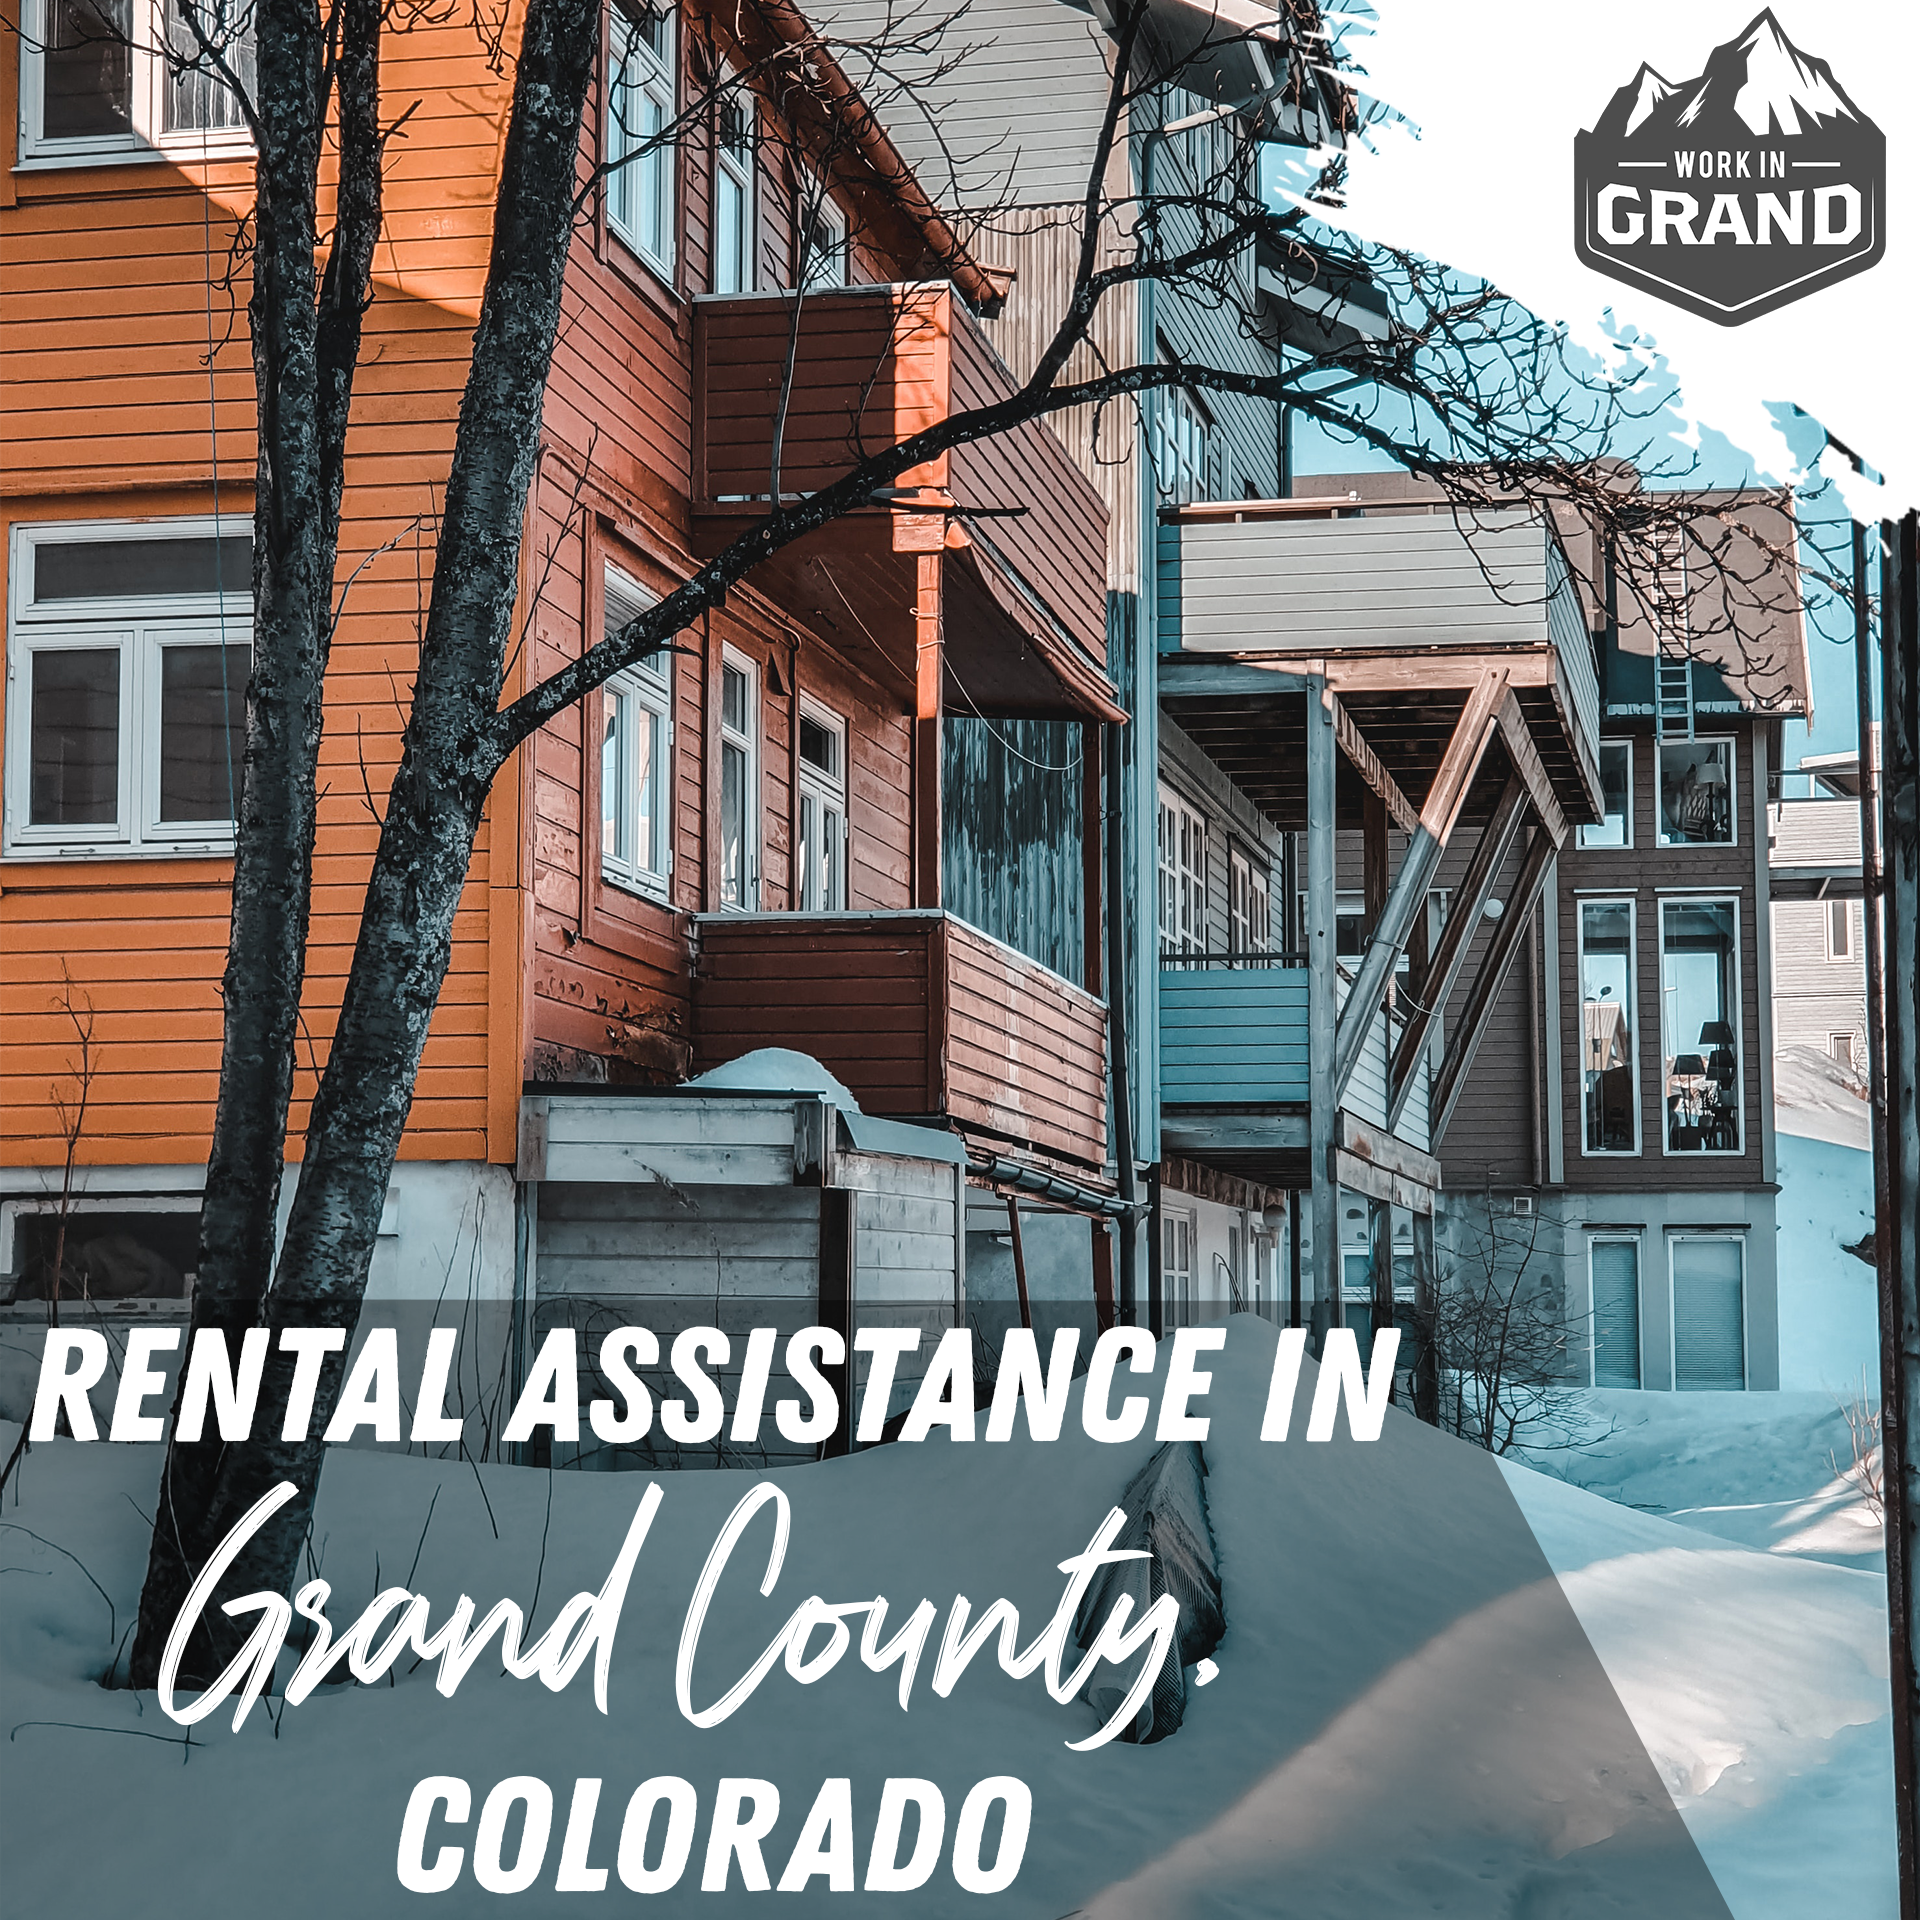 Rental Assistance in Grand County, Colorado